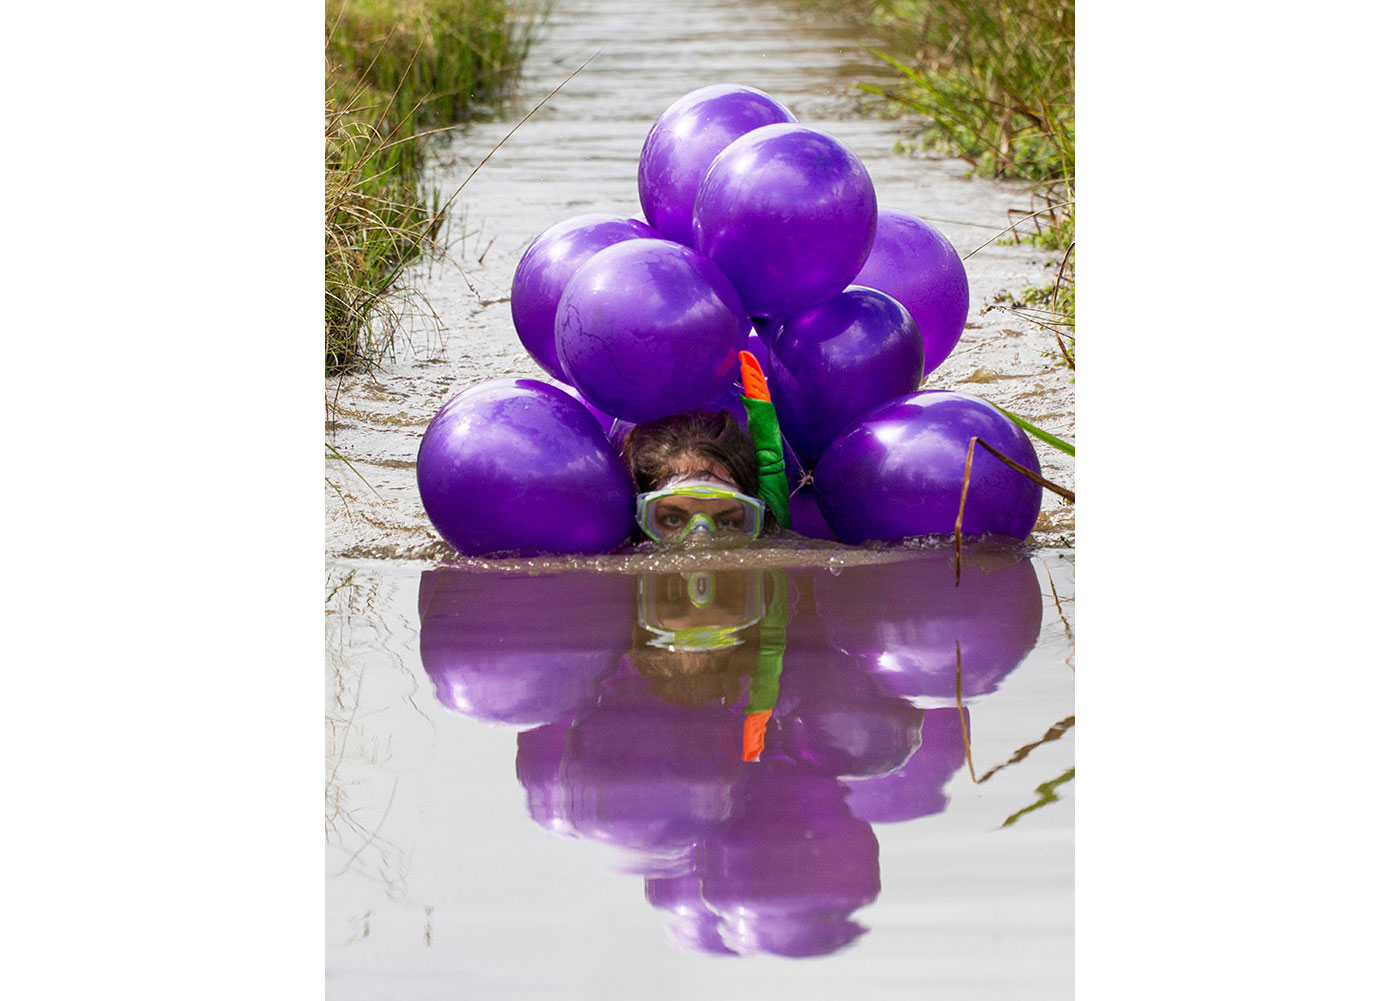 Bog snorkelling with balloons